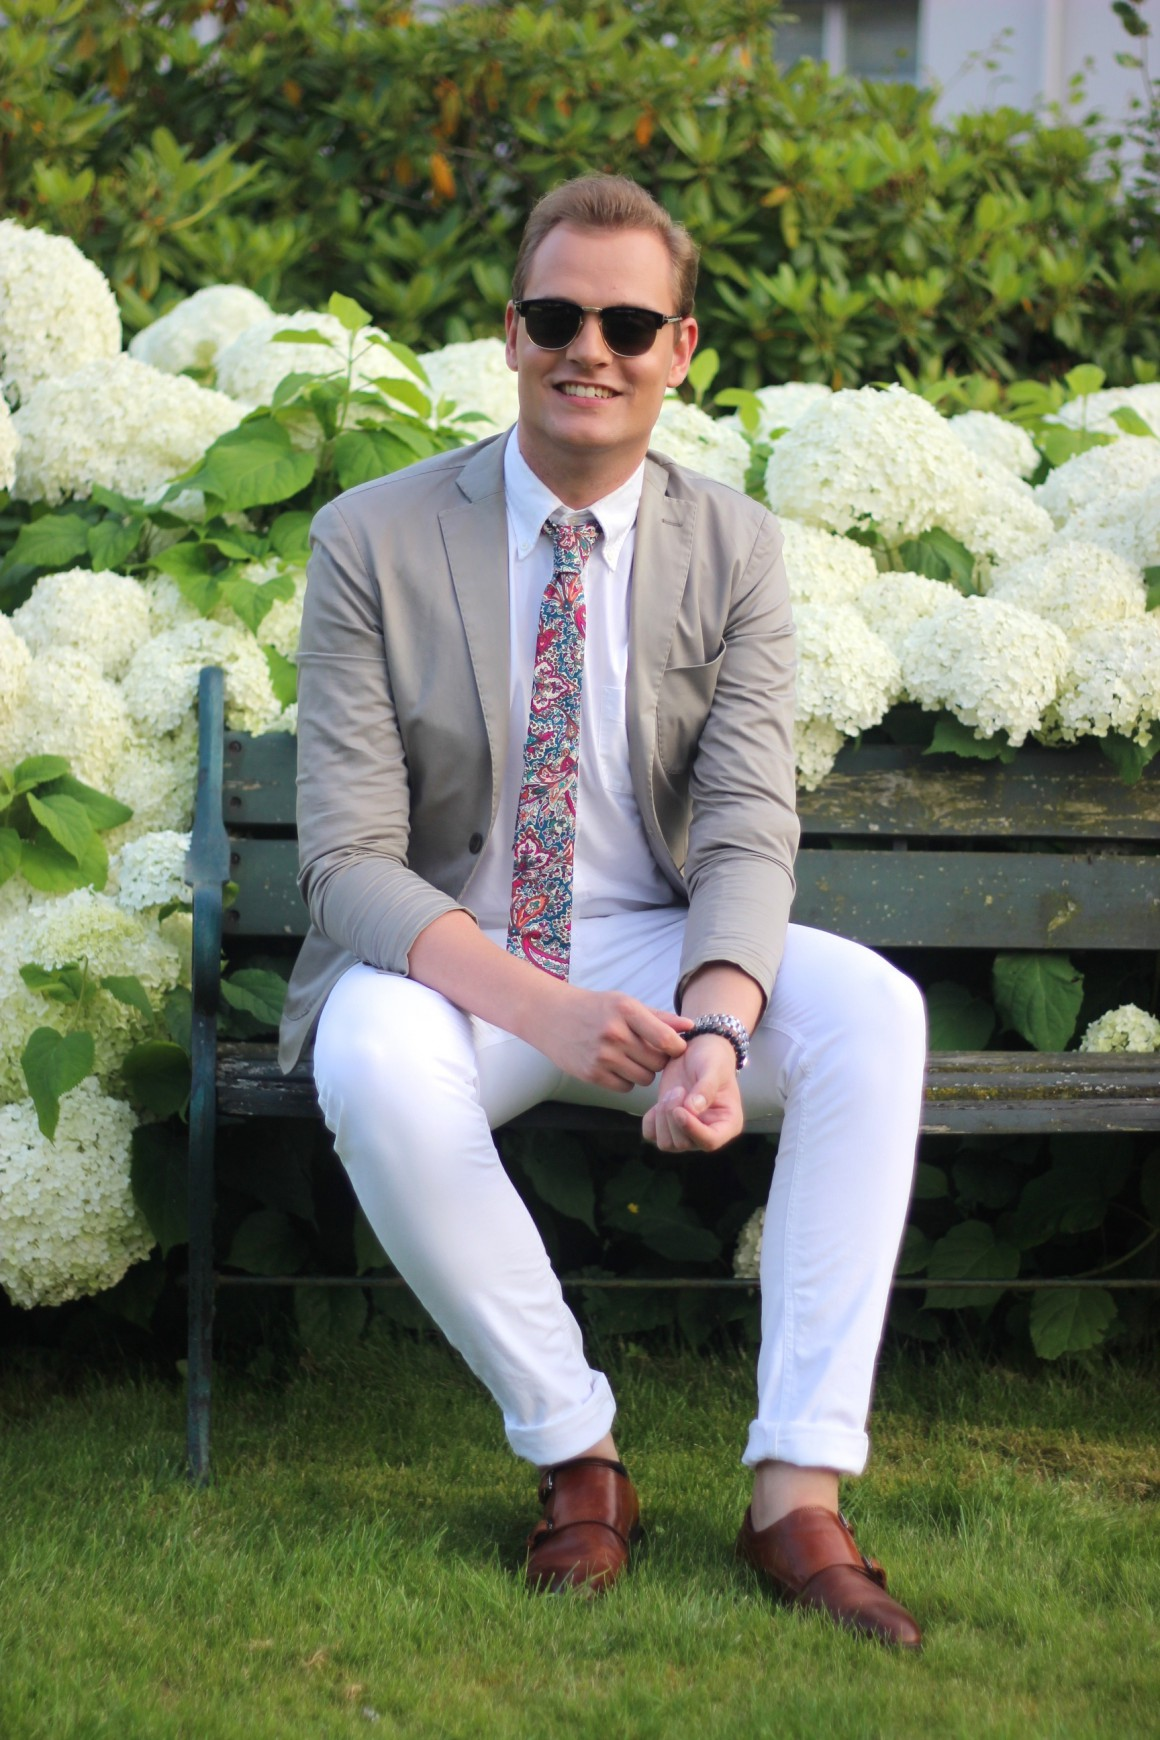 Old Sport JustKVN menswear and lifestyle blog